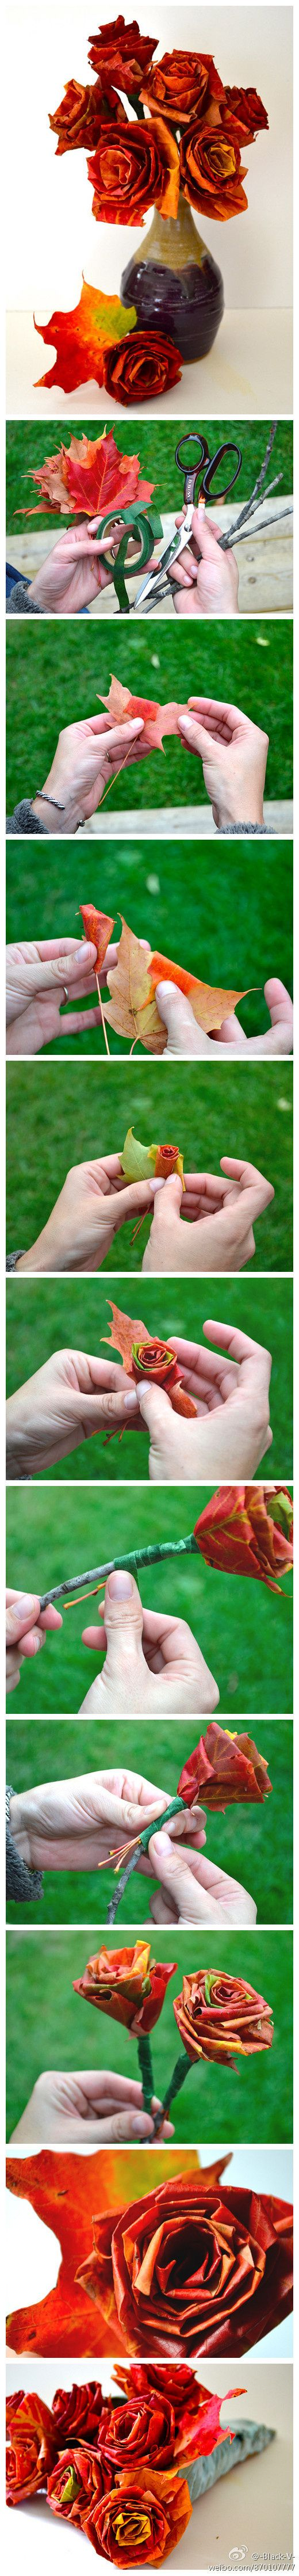 Make a holiday Rose or bouquet out of Fall leaves. Cool idea!